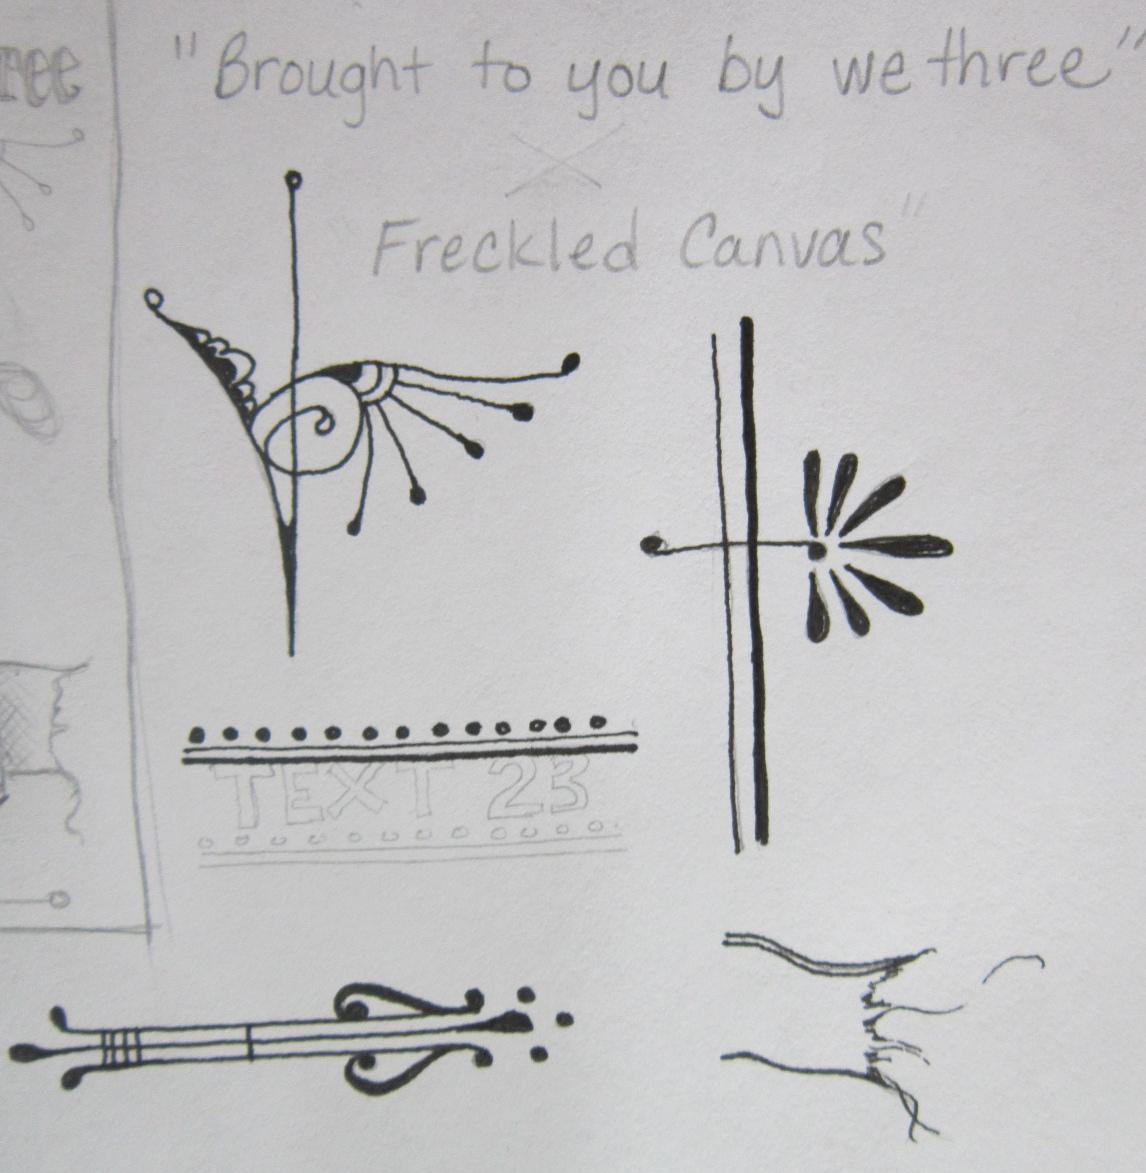 Freckled Canvas - image 14 - student project